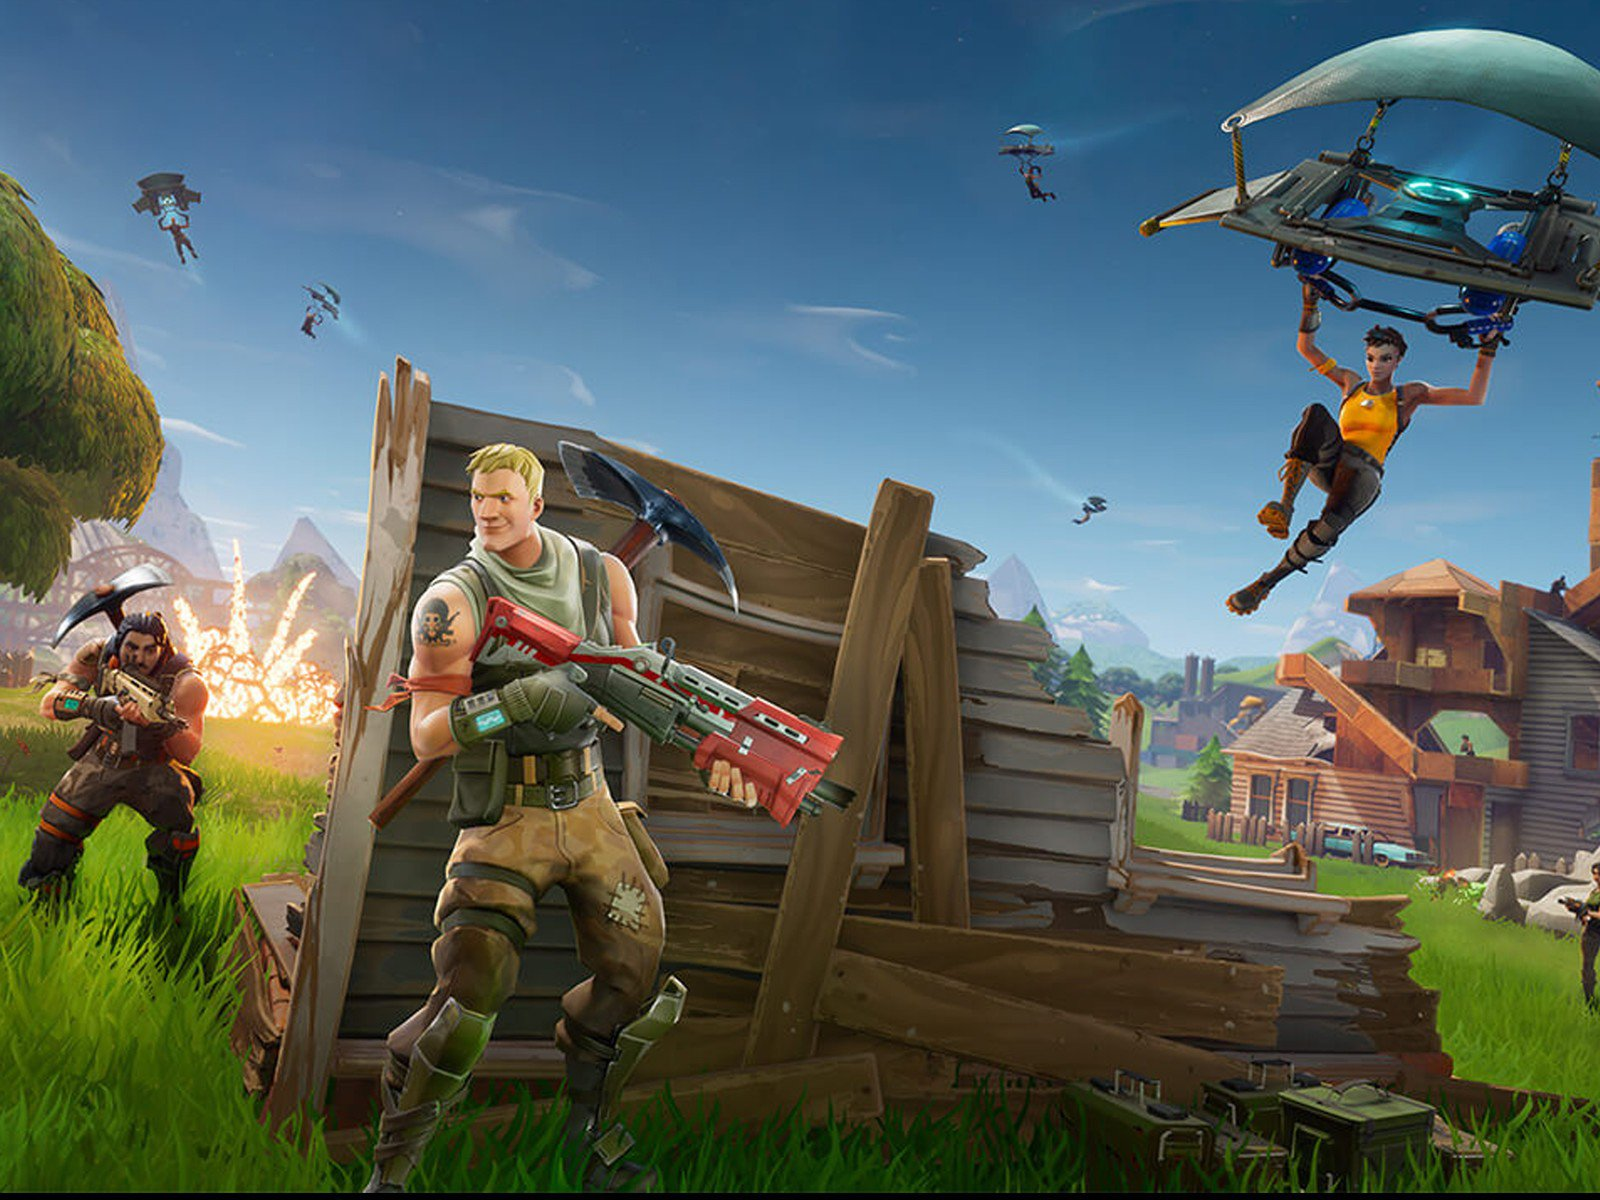 Fortnite game Image from https://www.androidcentral.com/best-battle-royale-games-playstation-4